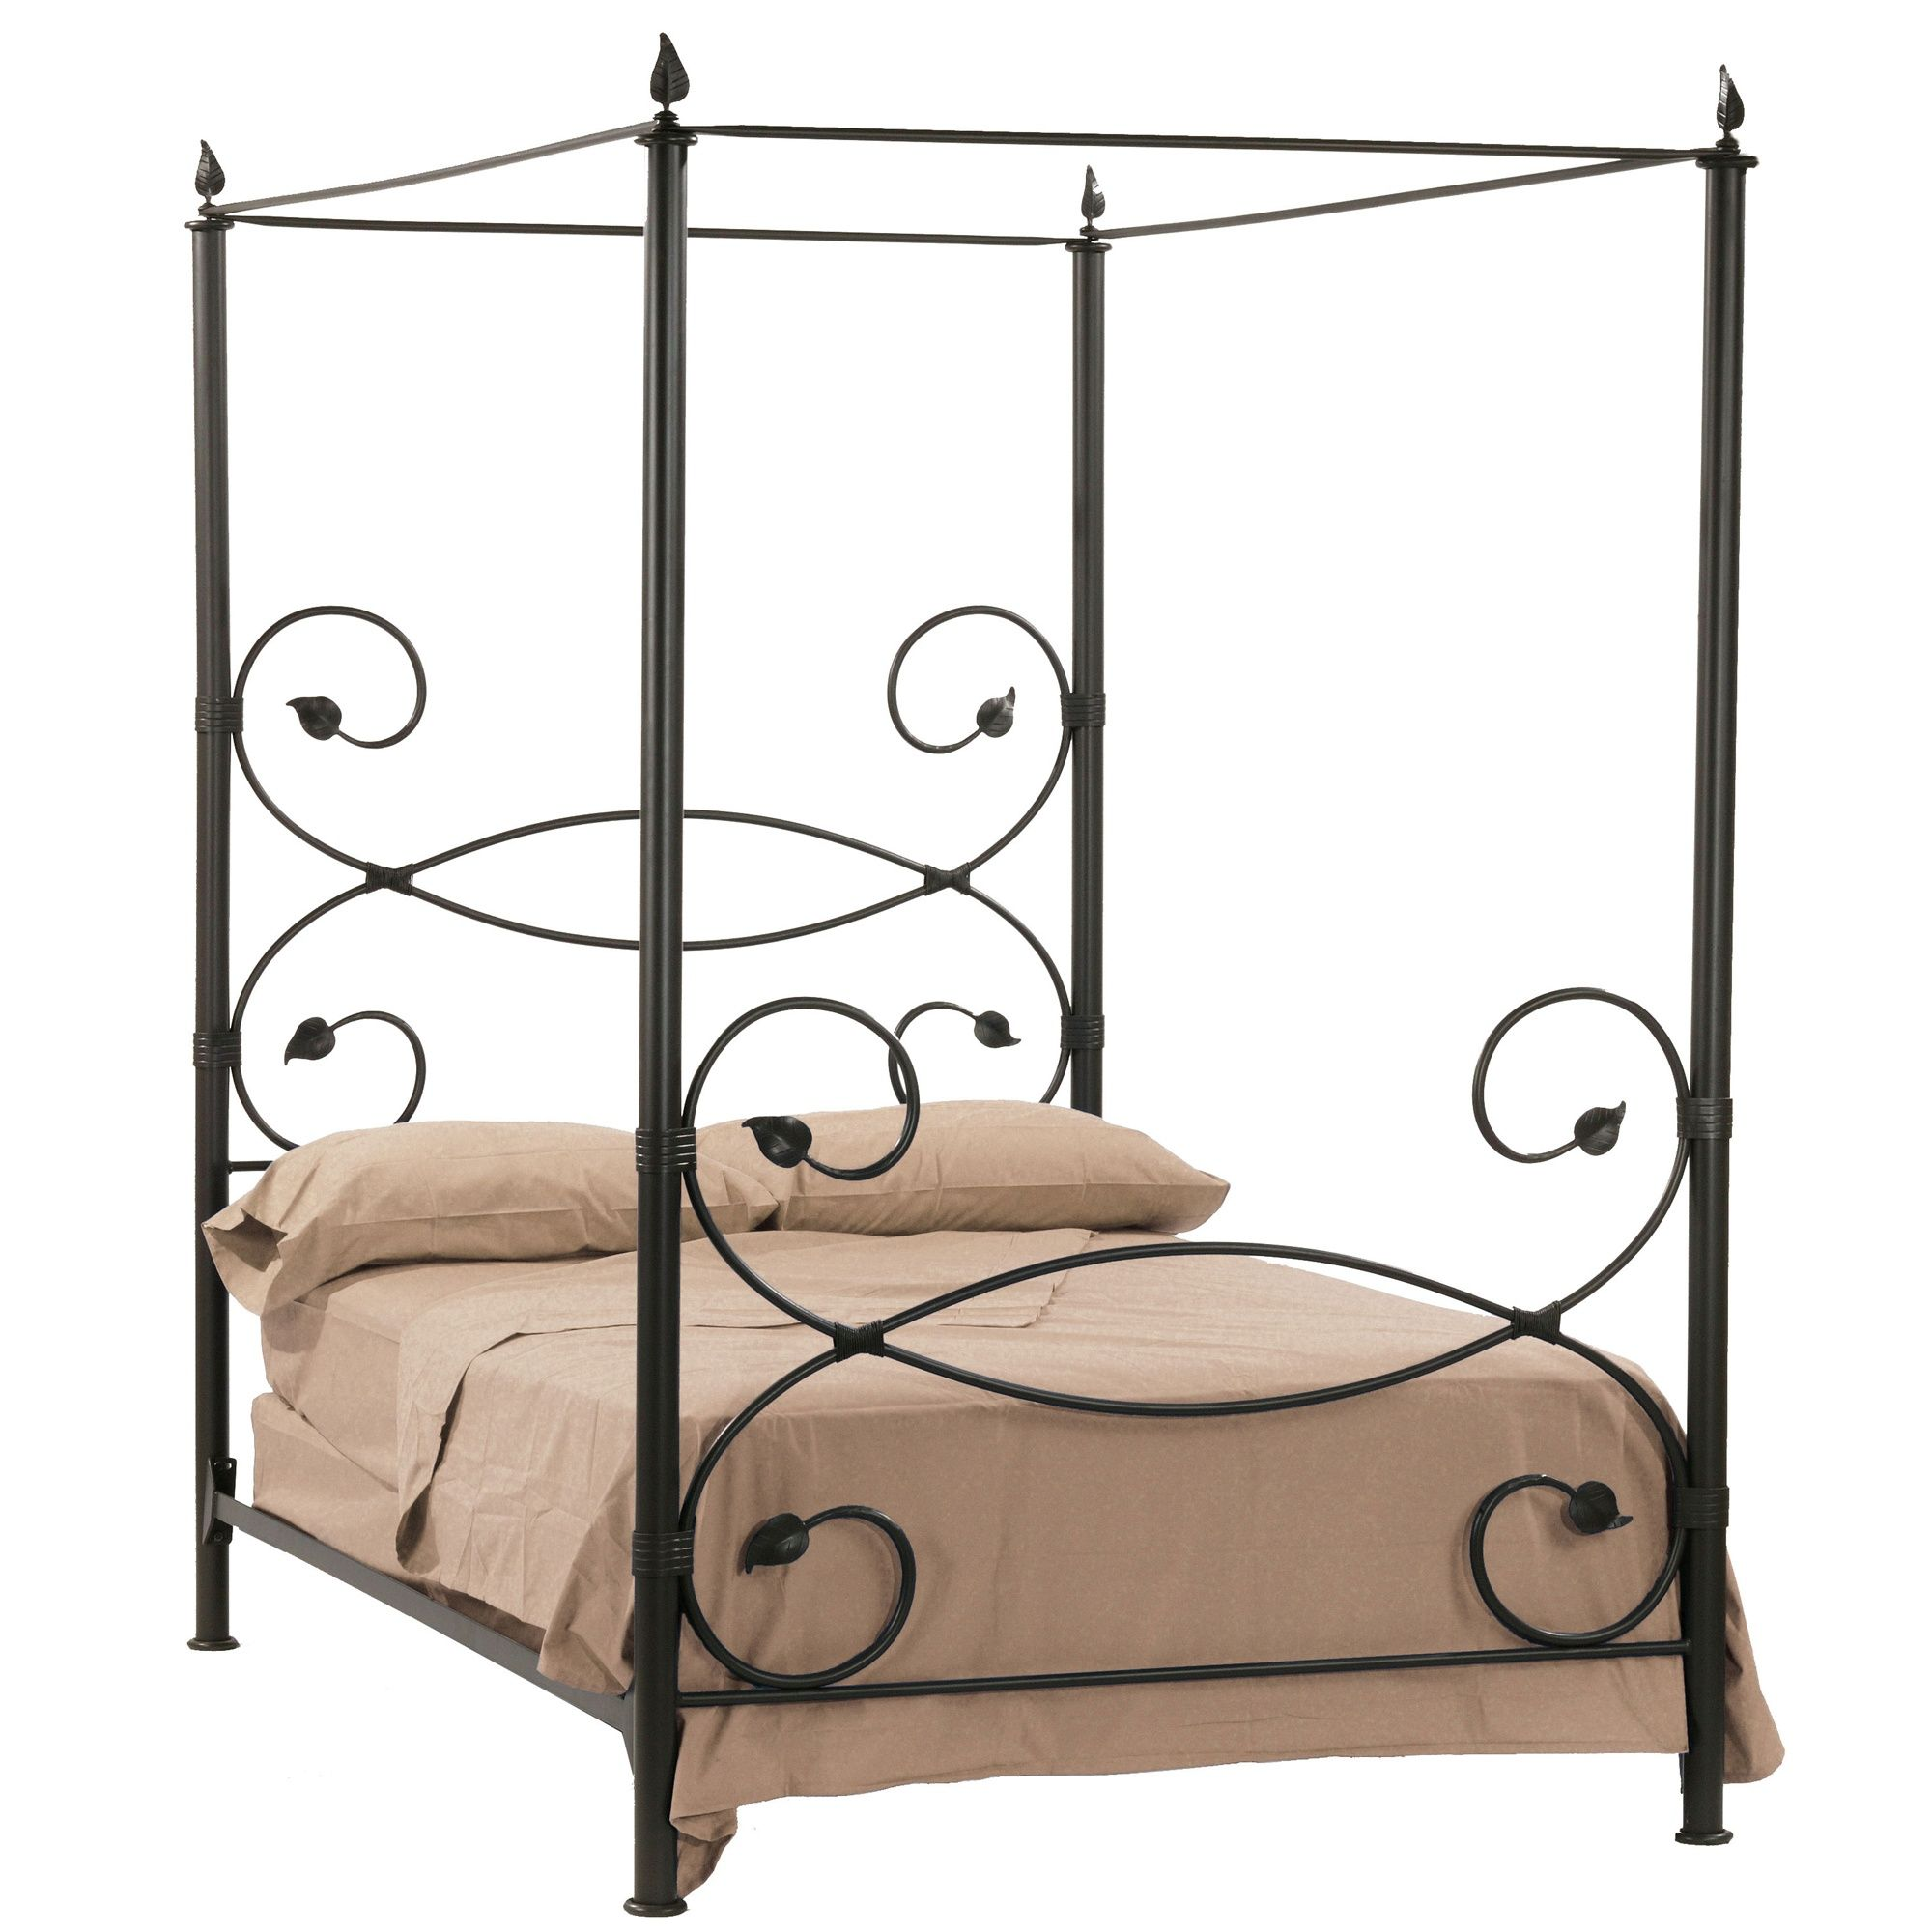 Leaf Canopy Bed Iron Canopy Bed Wrought Iron Beds Iron Bed